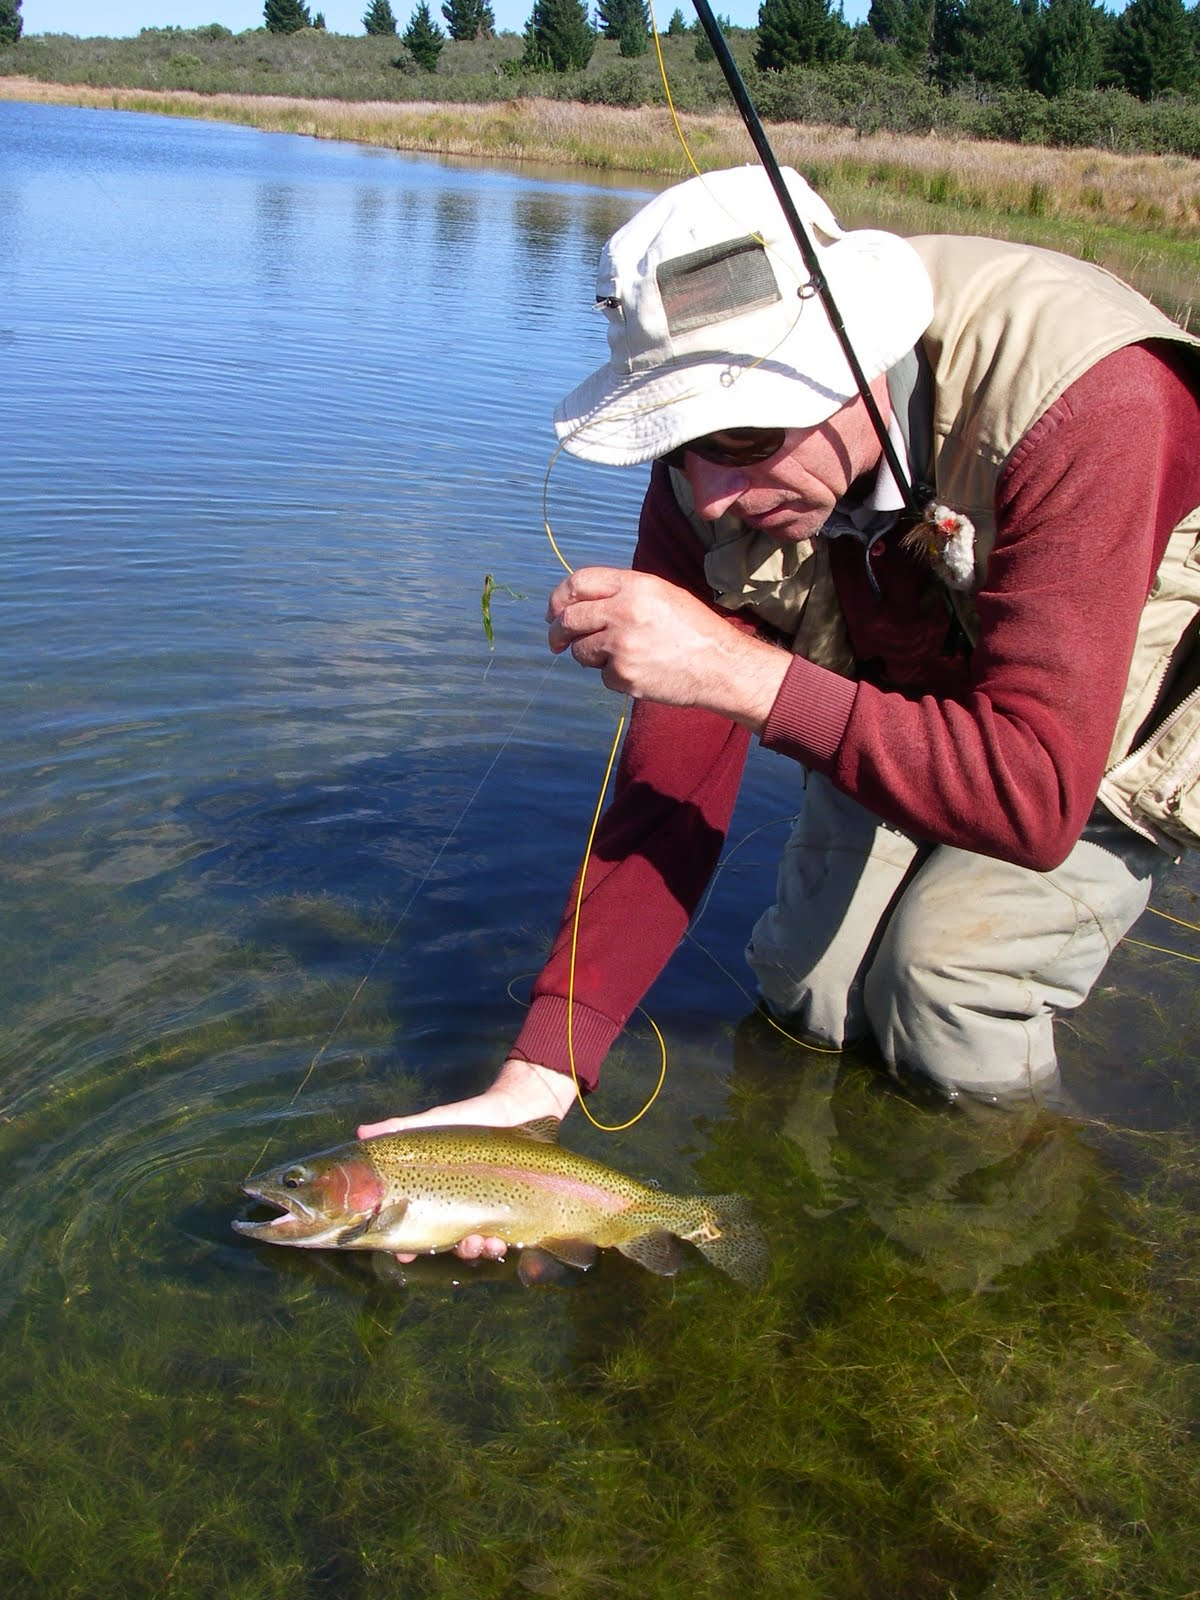 Castle lager east cape biltong festival 2014 fly fishing for Fly fishing competitions